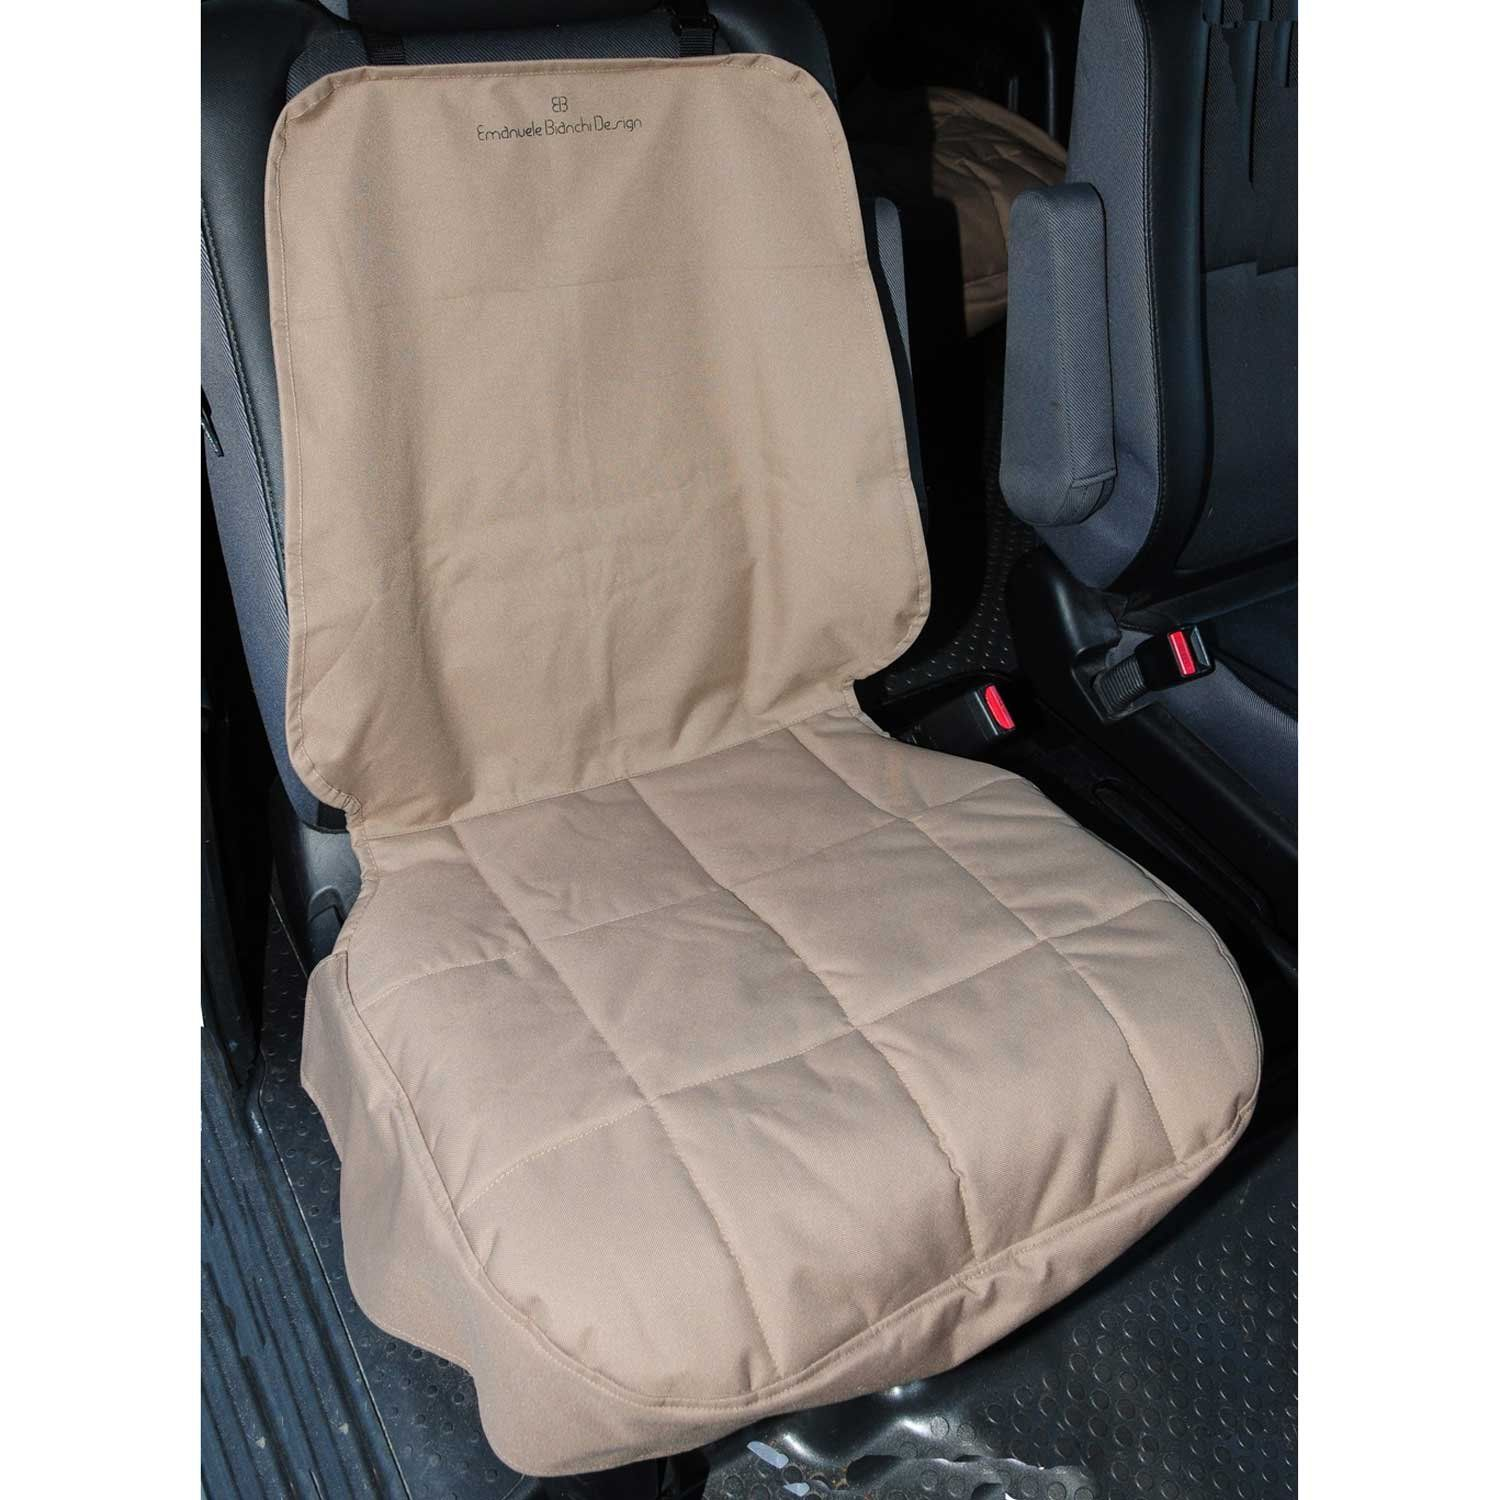 Pet Ego Front Car Seat Protector in Tan | Car seat protector, Seat